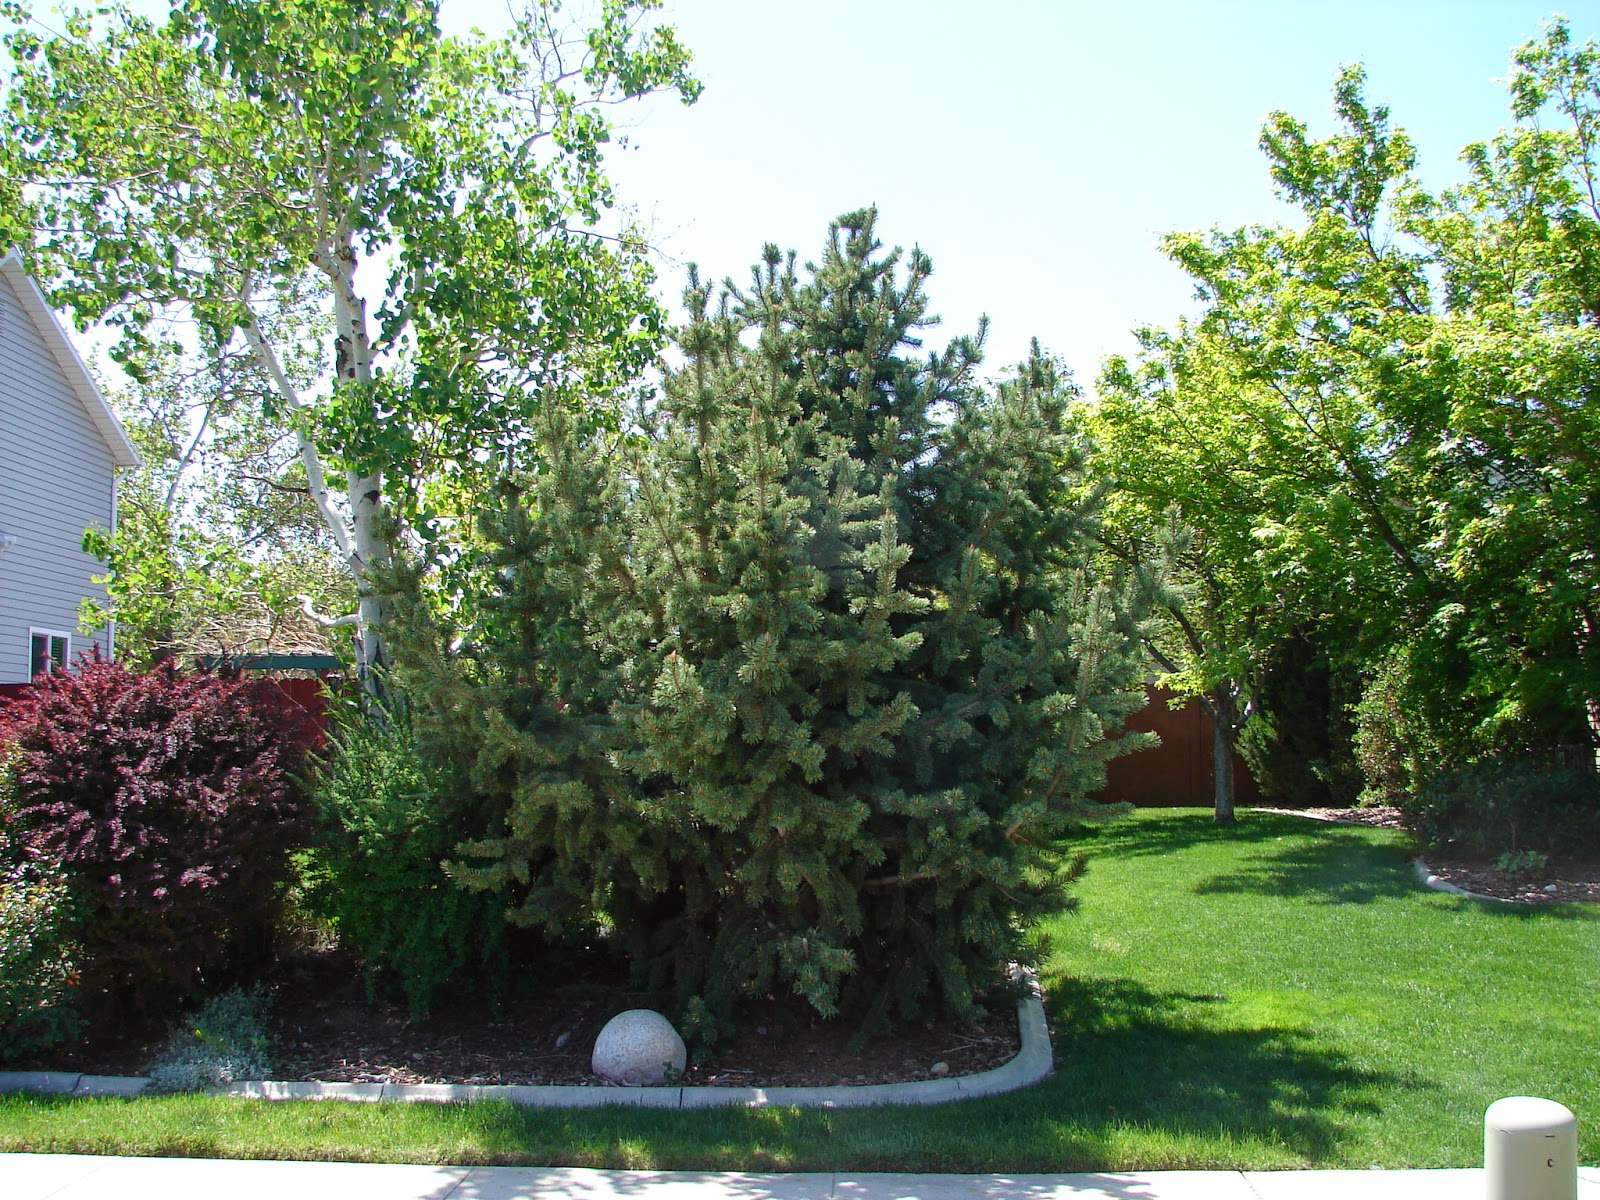 New utah gardener bristlecone pine drought tolerant for Drought tolerant trees